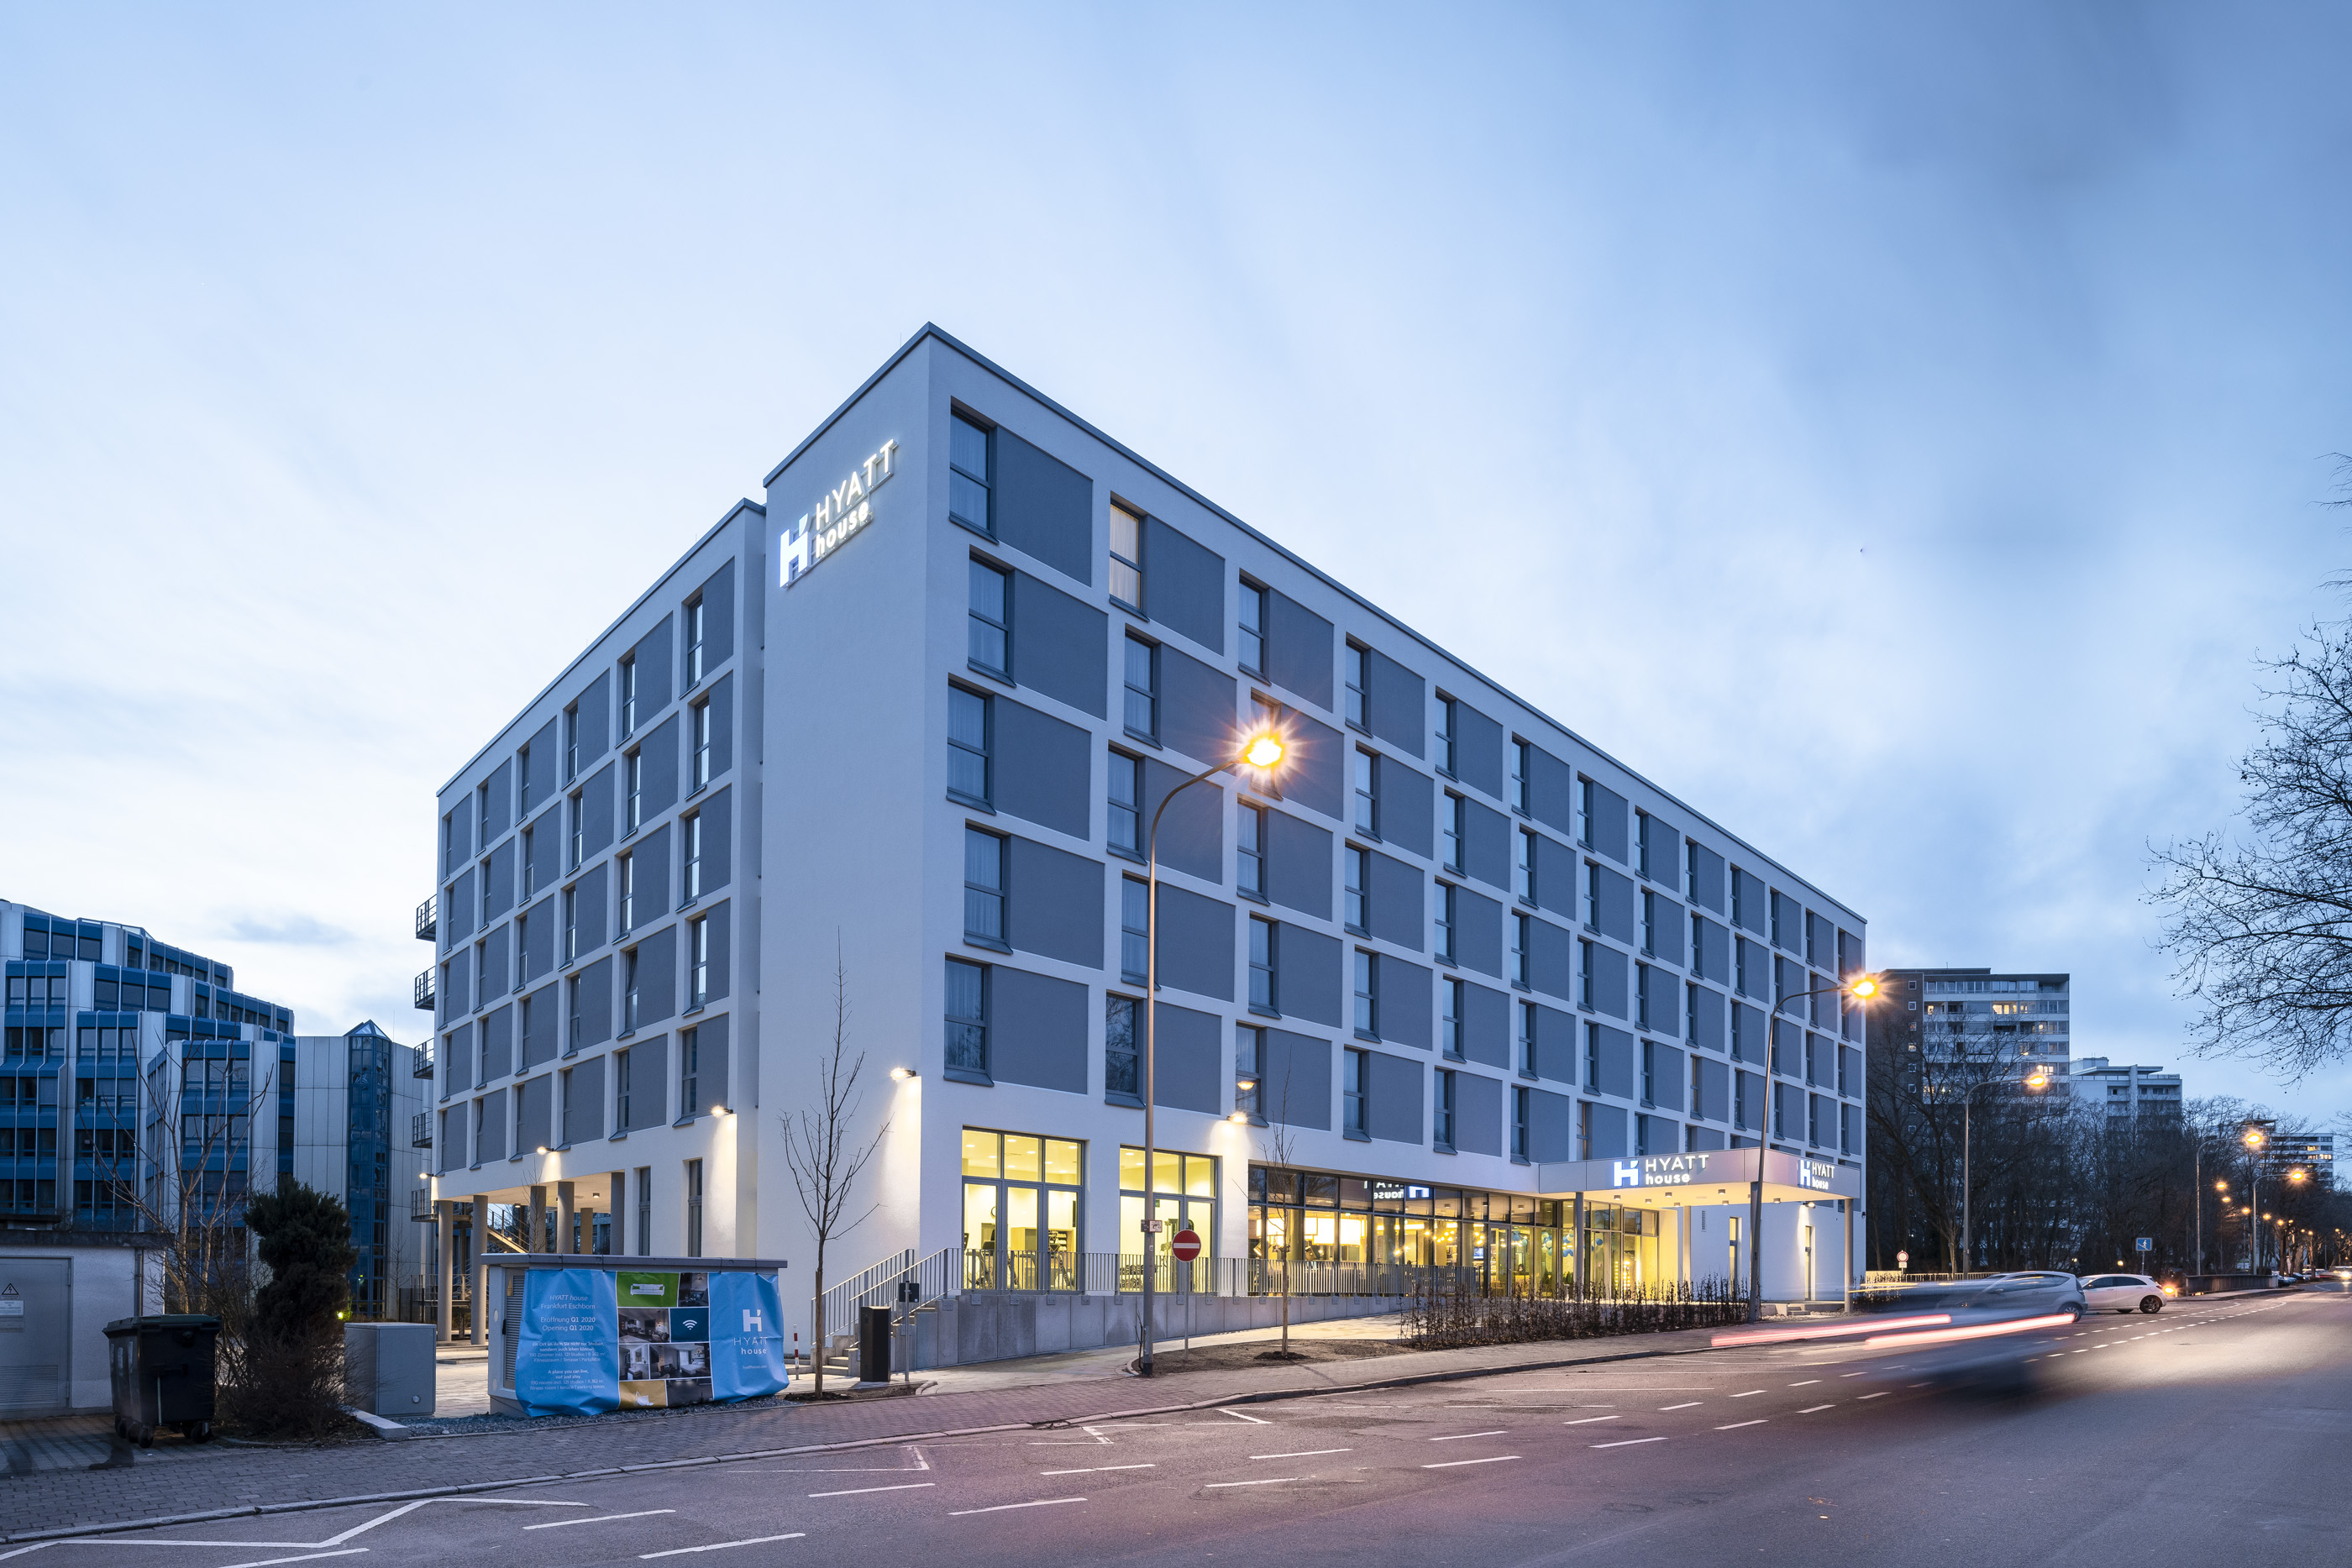 Hyatt House in Eschborn